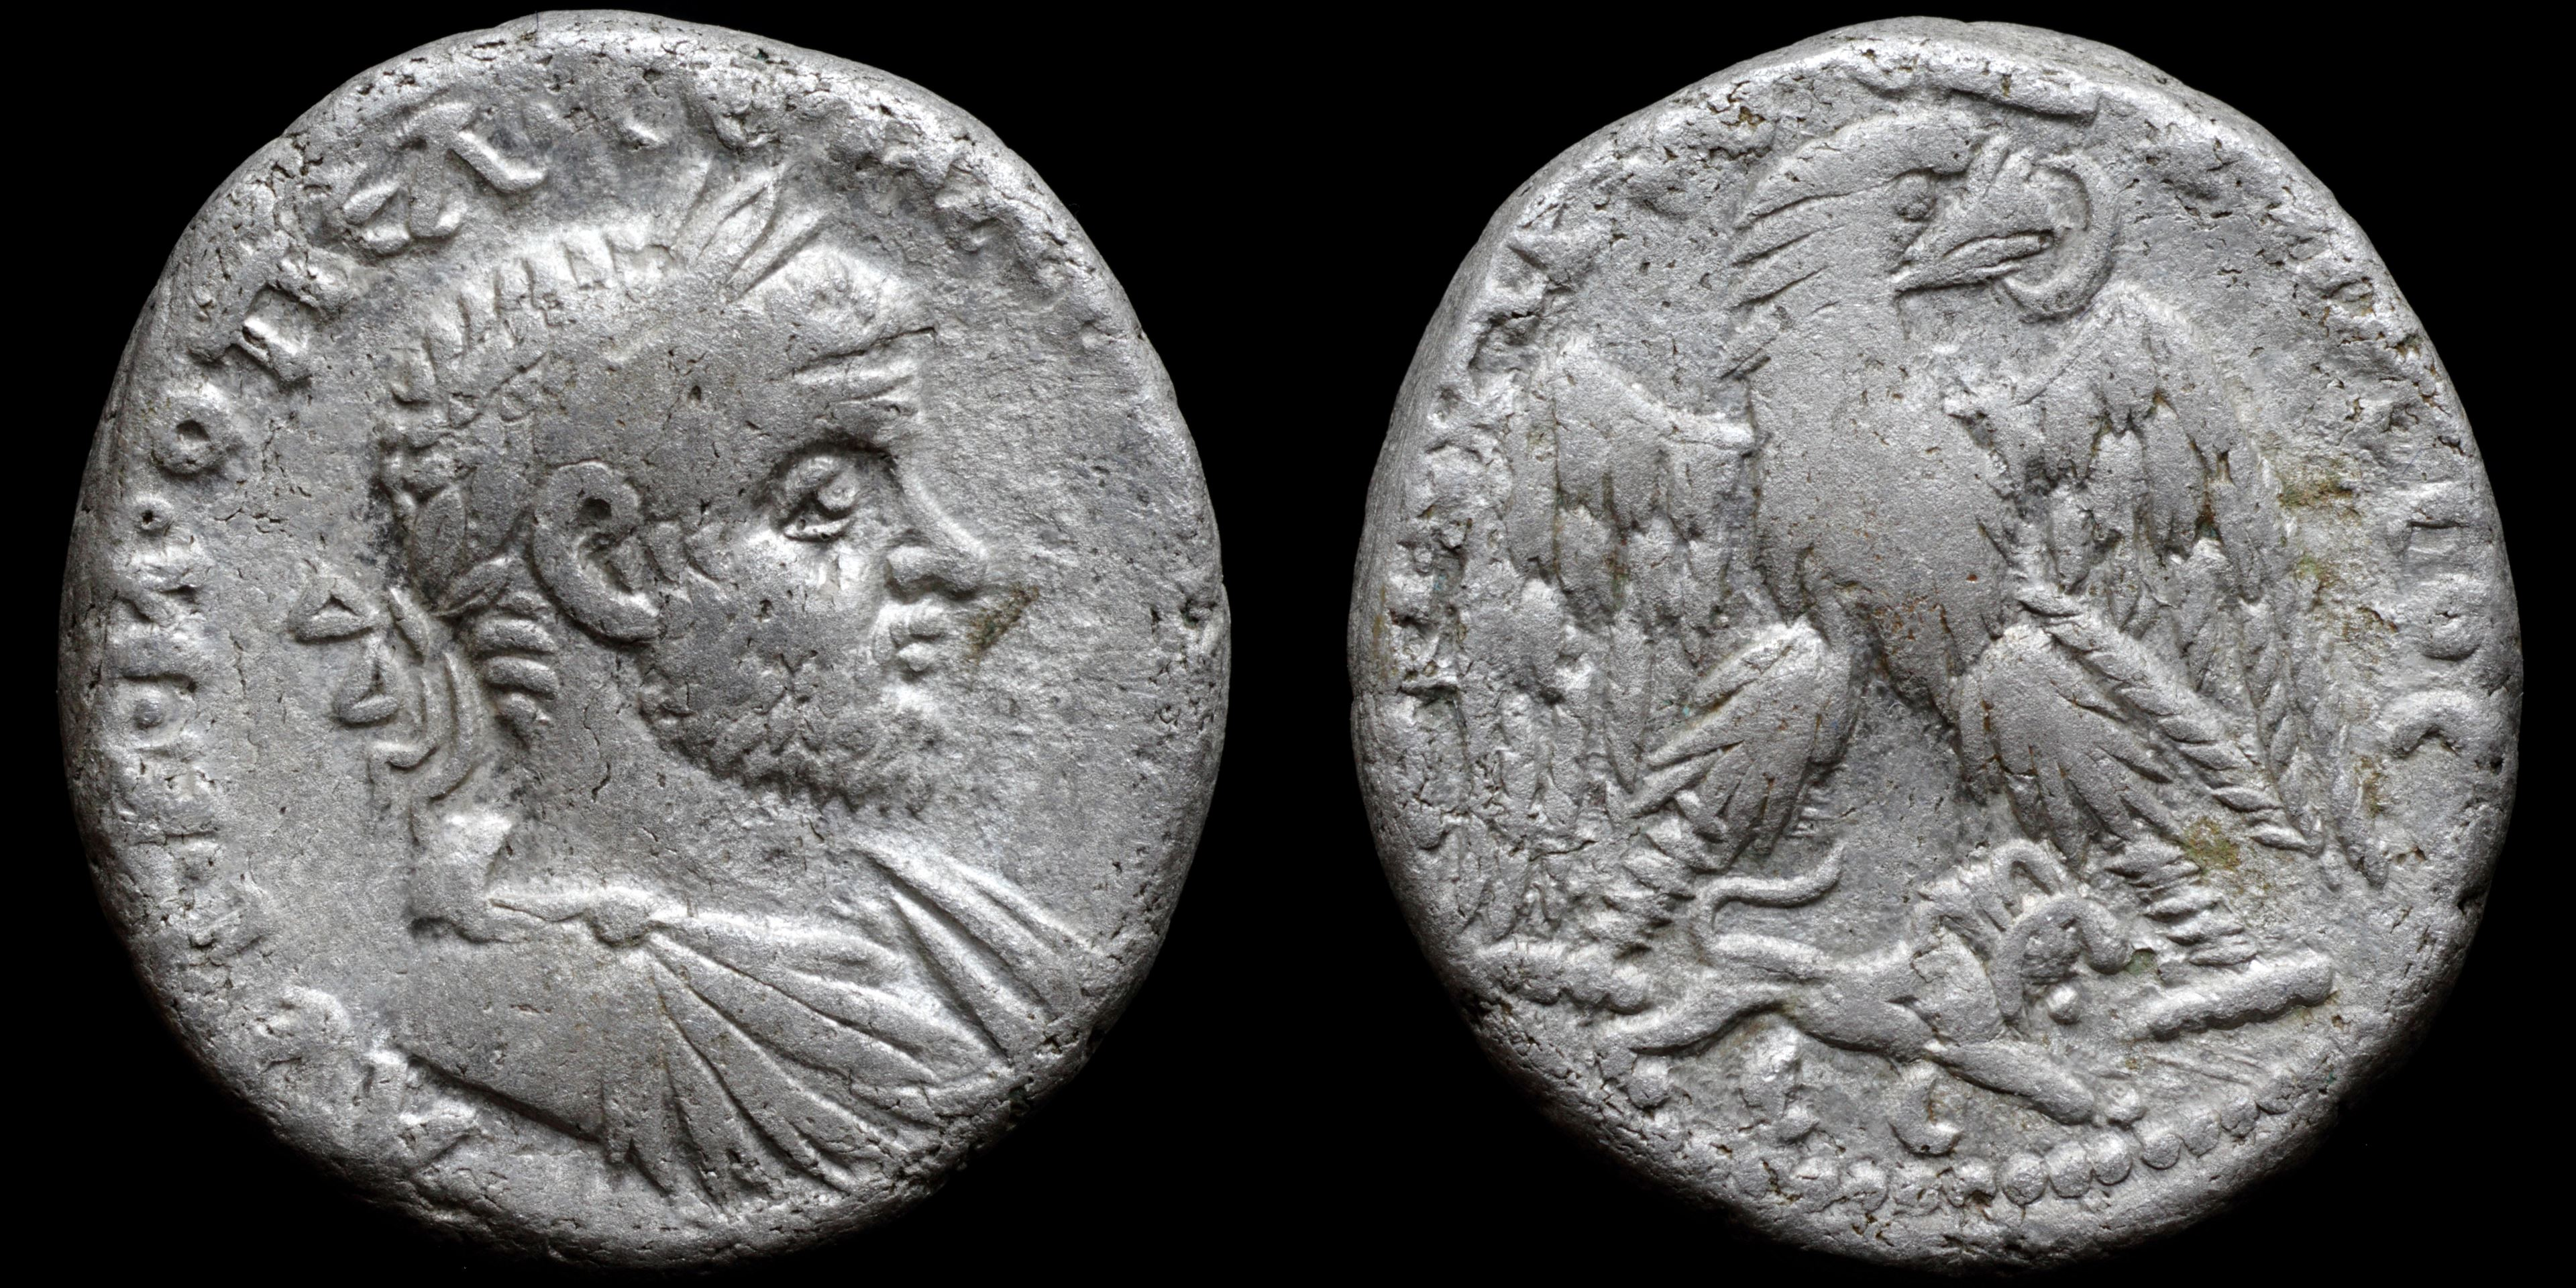 /Files/Images/Coinsite/CoinDB/Macrinus_Hierapolis.jpg